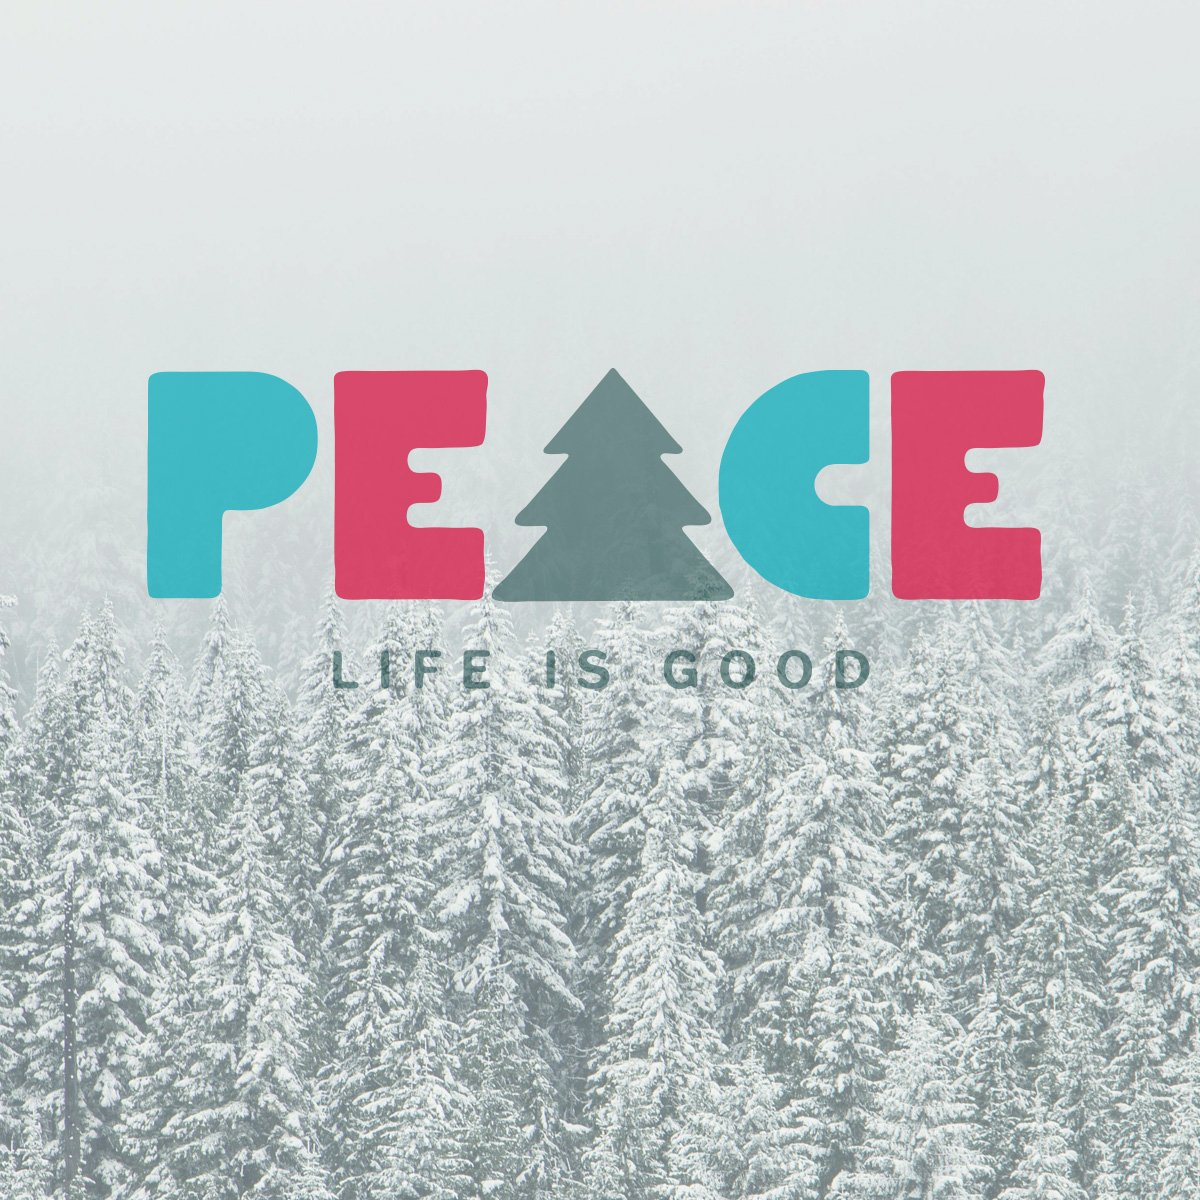 Peace on earth and good vibes to all. https://t.co/3pDlZjDZ1E